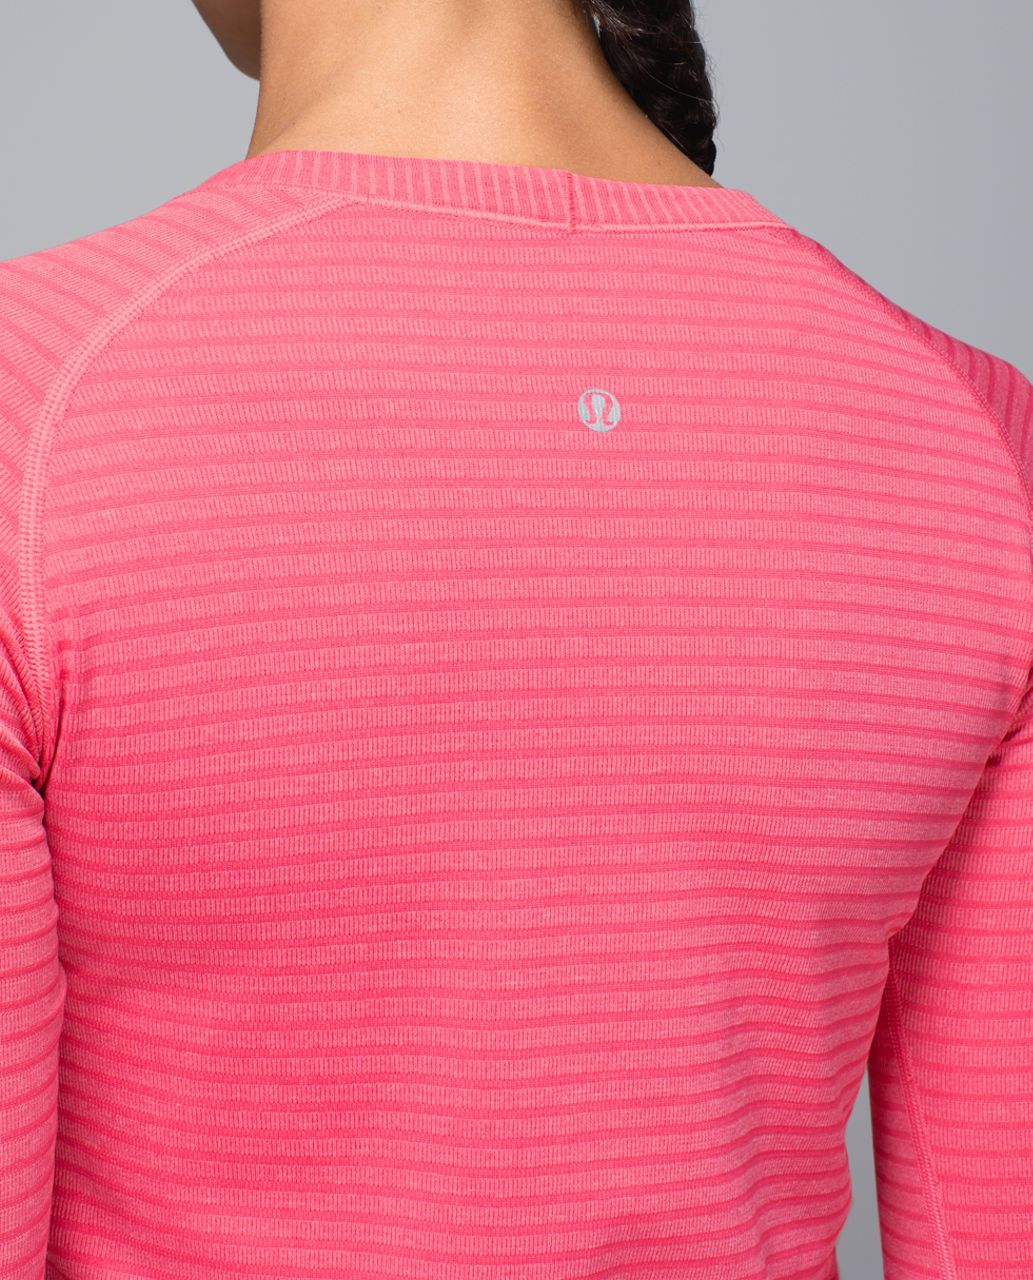 Lululemon Run:  Swiftly Tech Long Sleeve Crew - Rugby Stripe Tonal Heathered Boom Juice